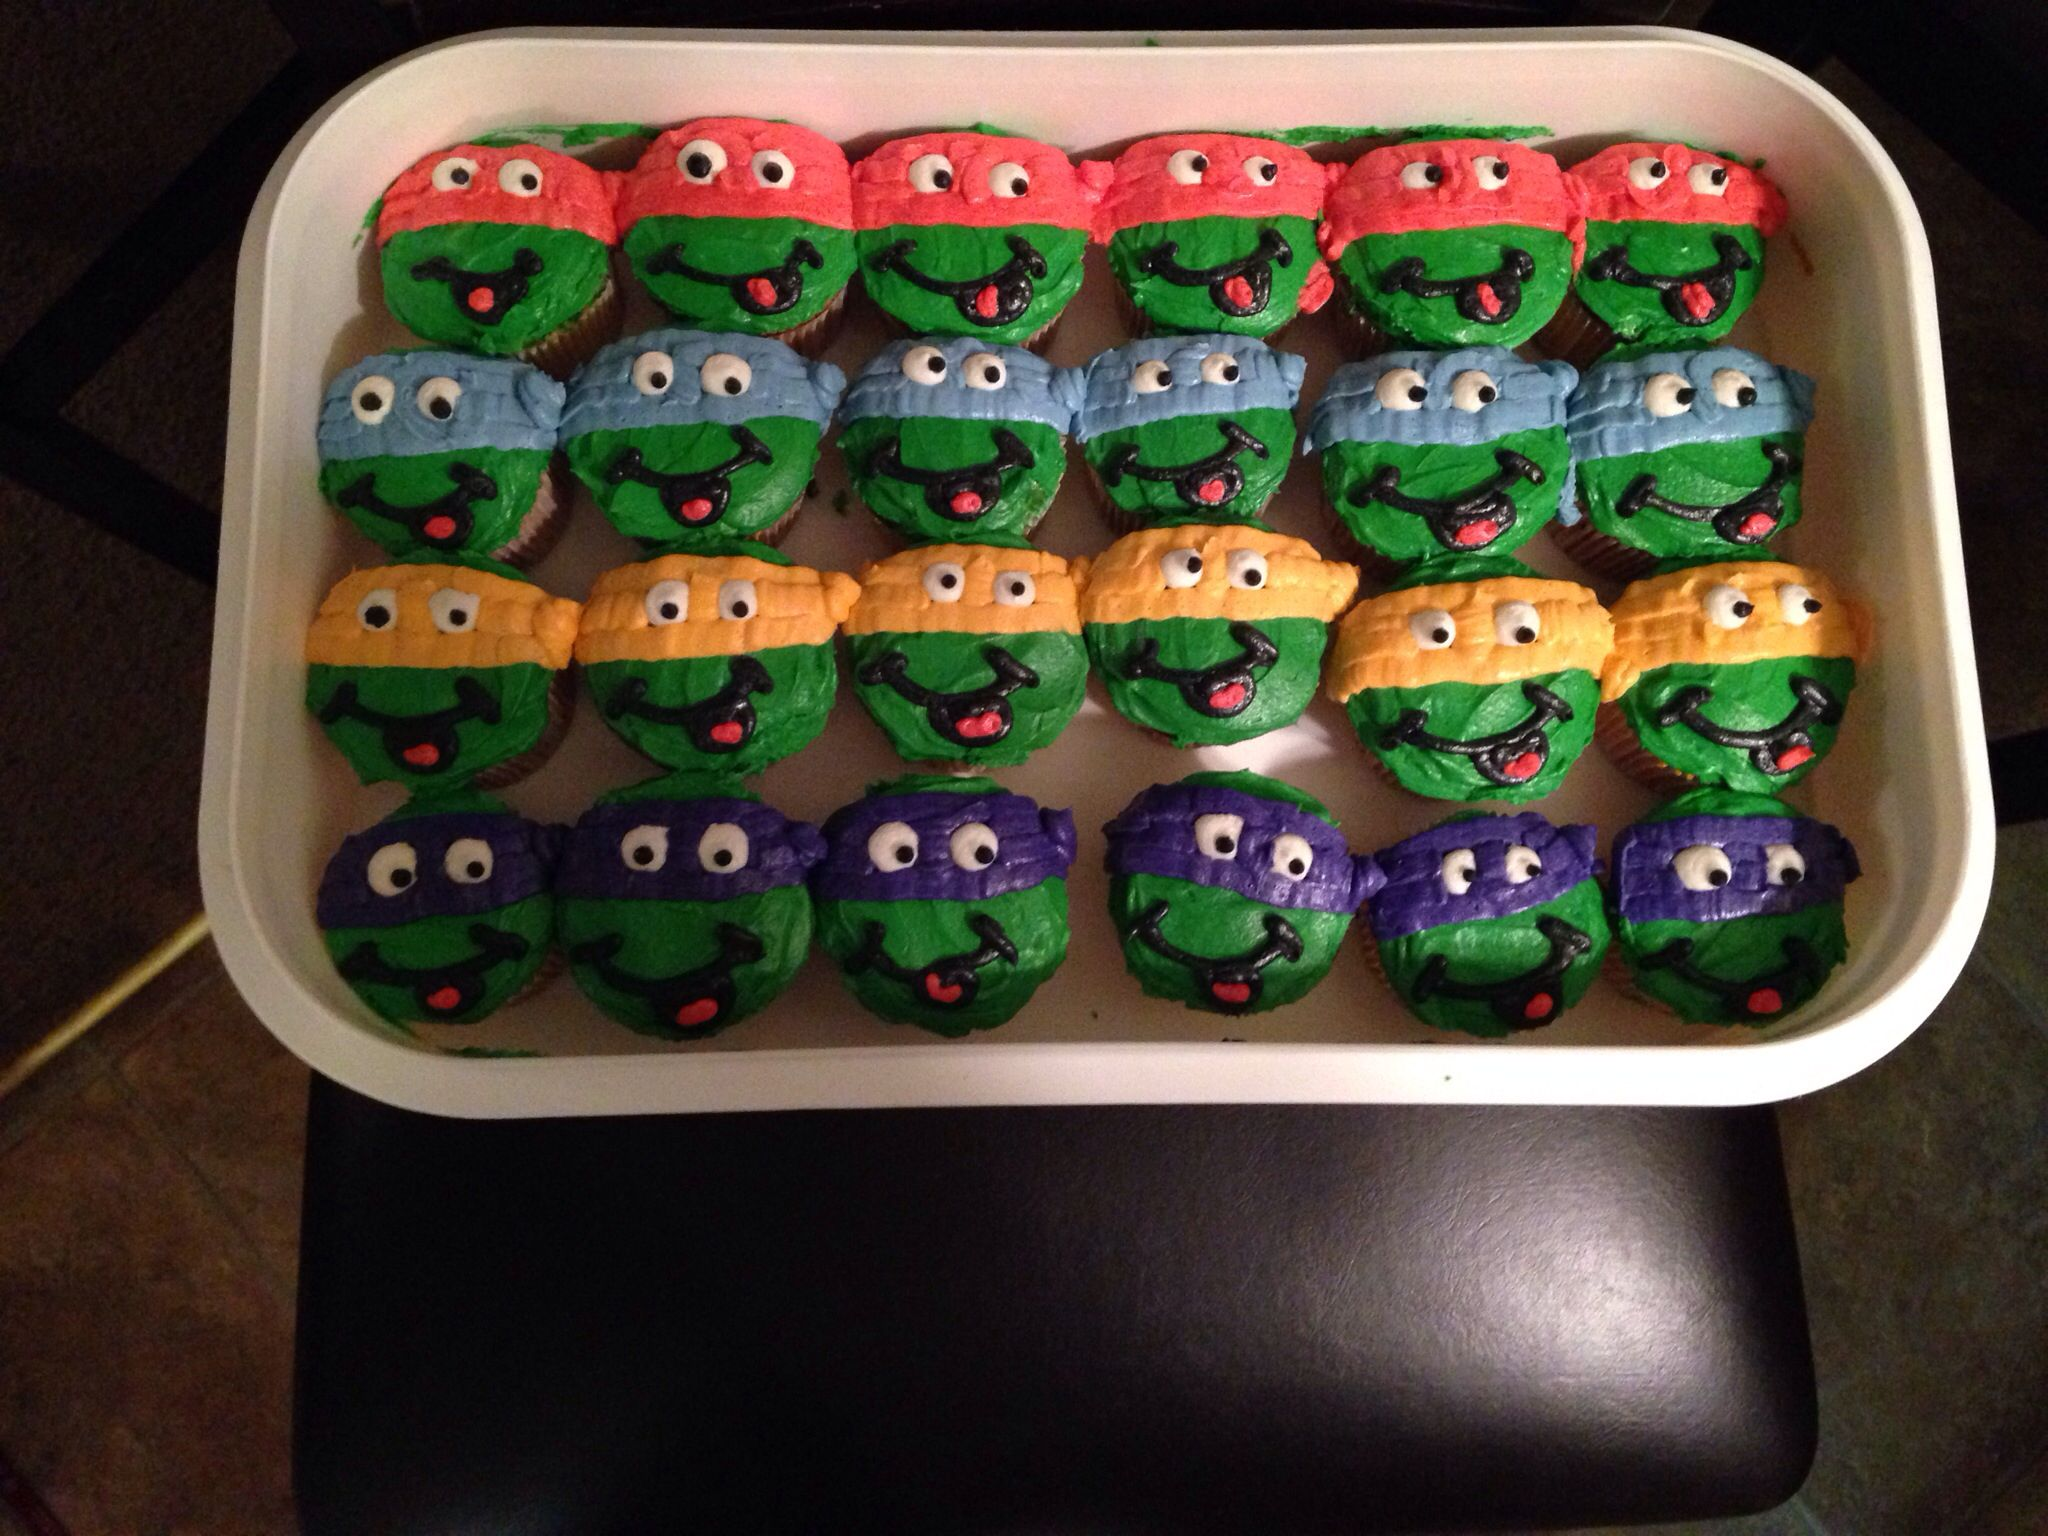 Andrews TMNT cupcakes!!! @Holly Wait